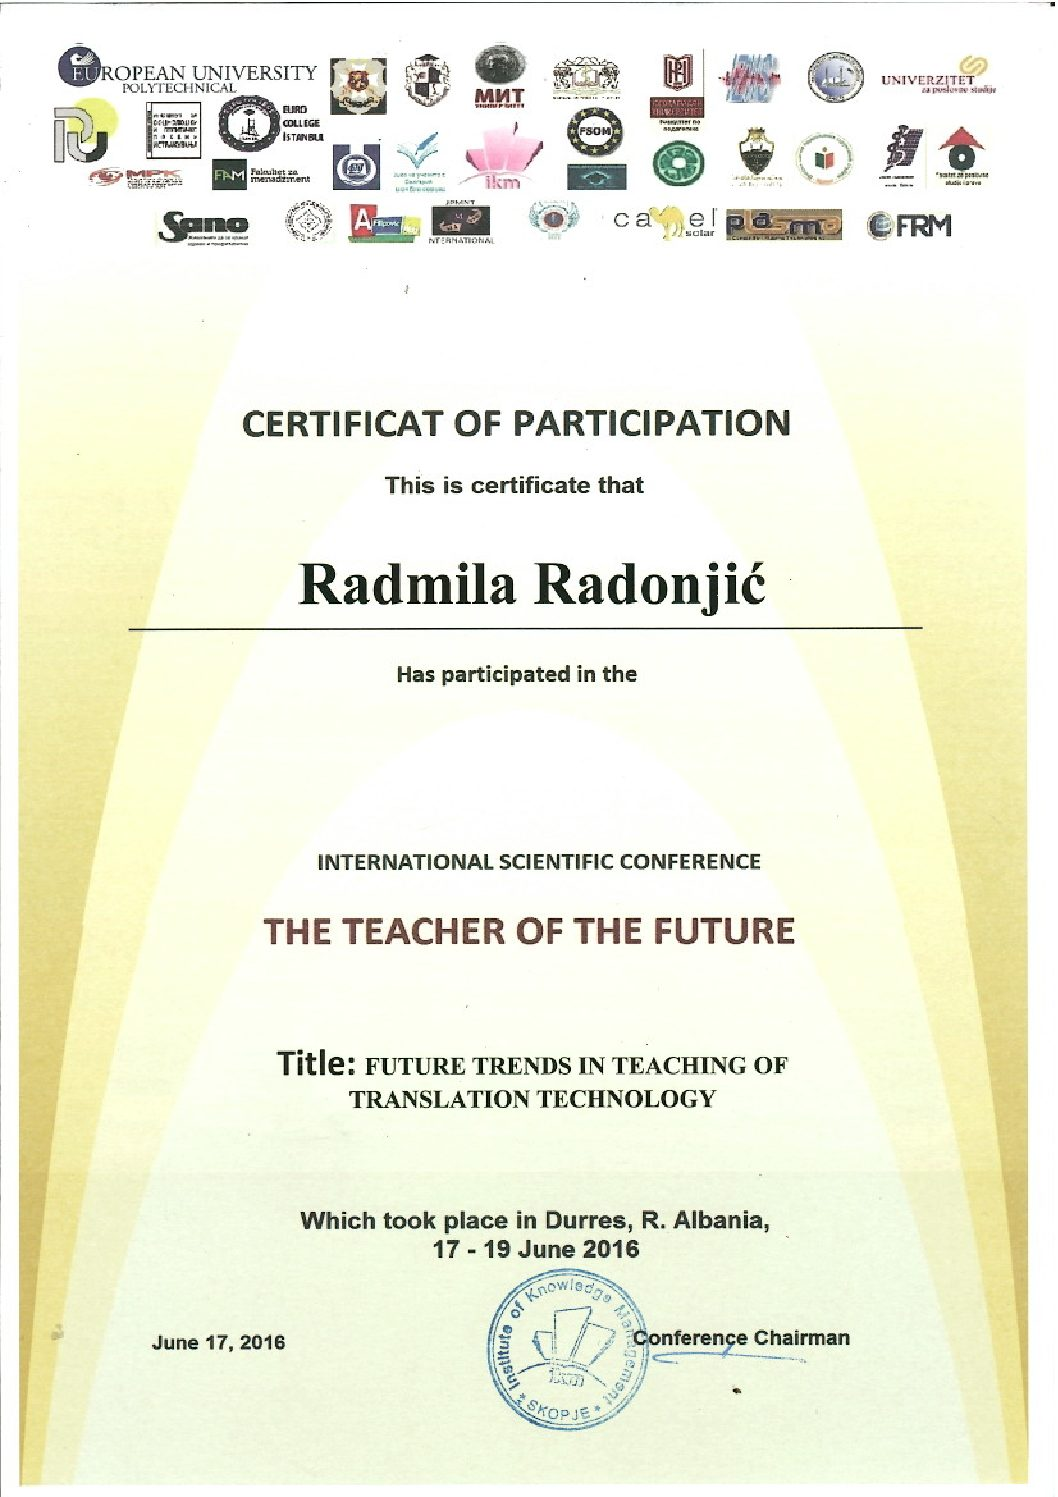 The Teacher of the Future 2